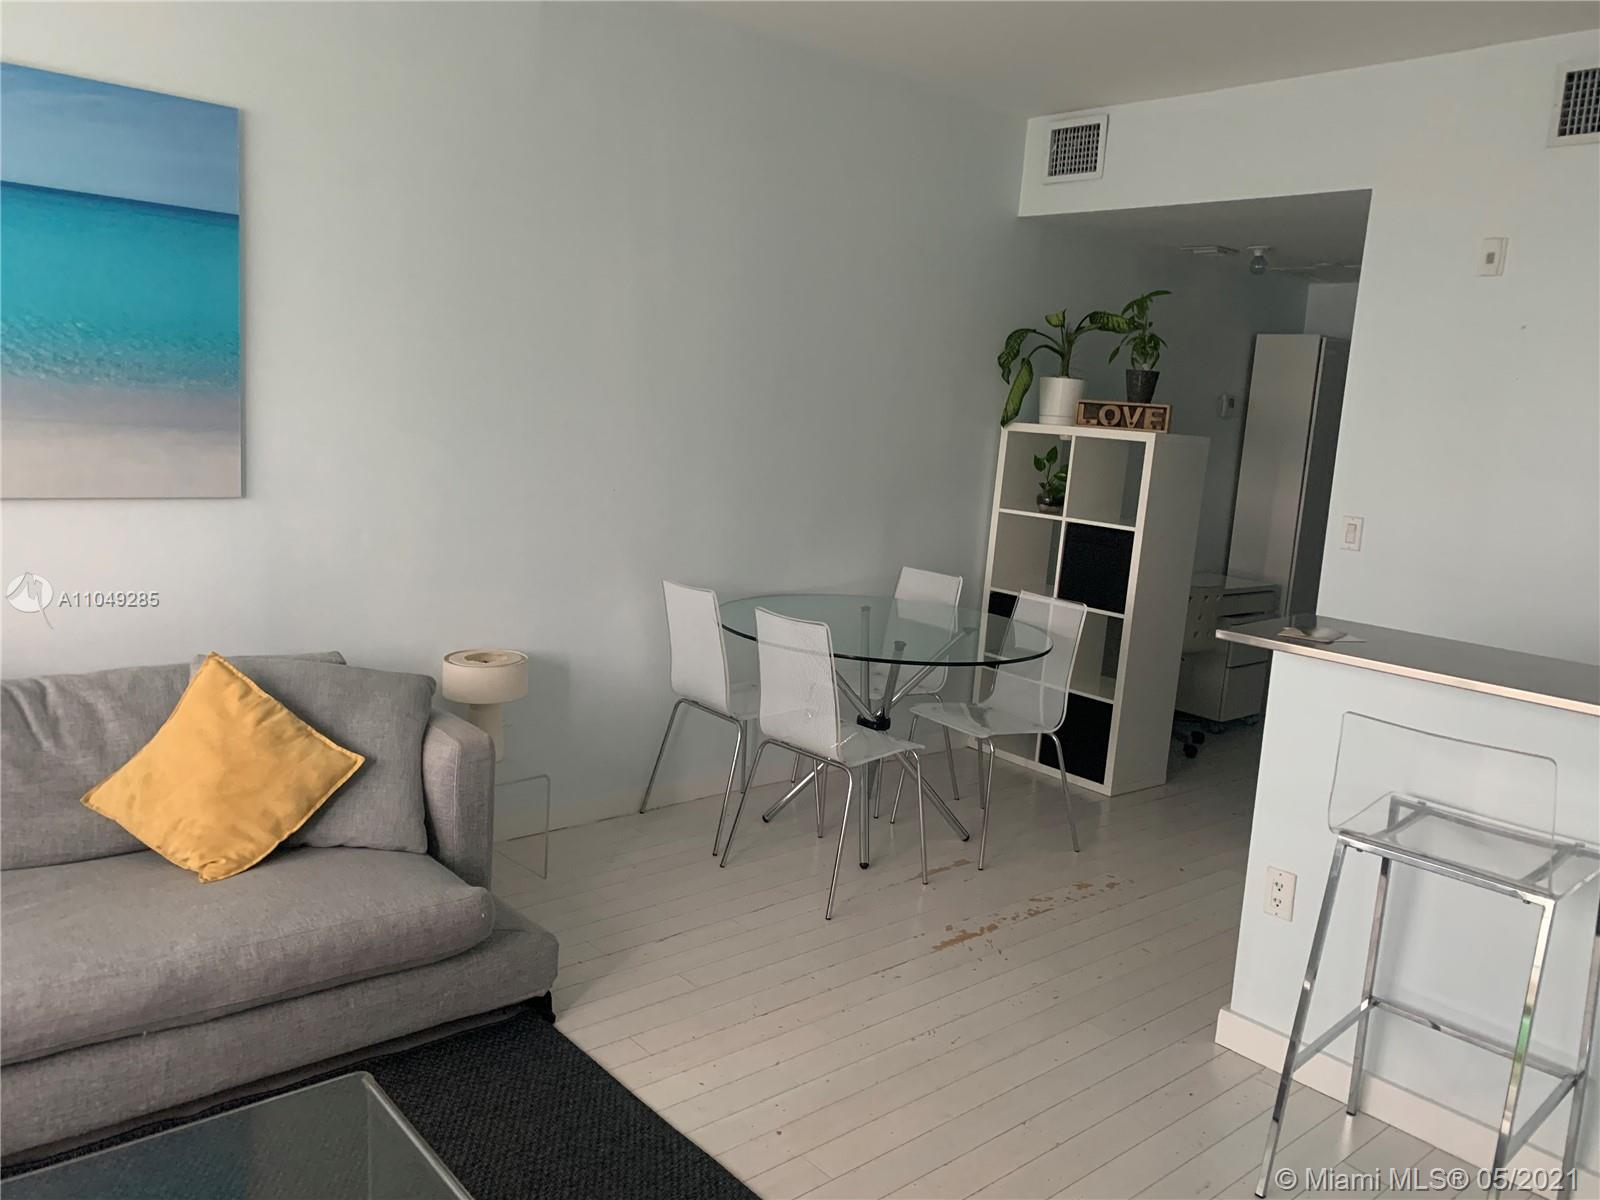 3917 N Meridian Ave #102 For Sale A11049285, FL